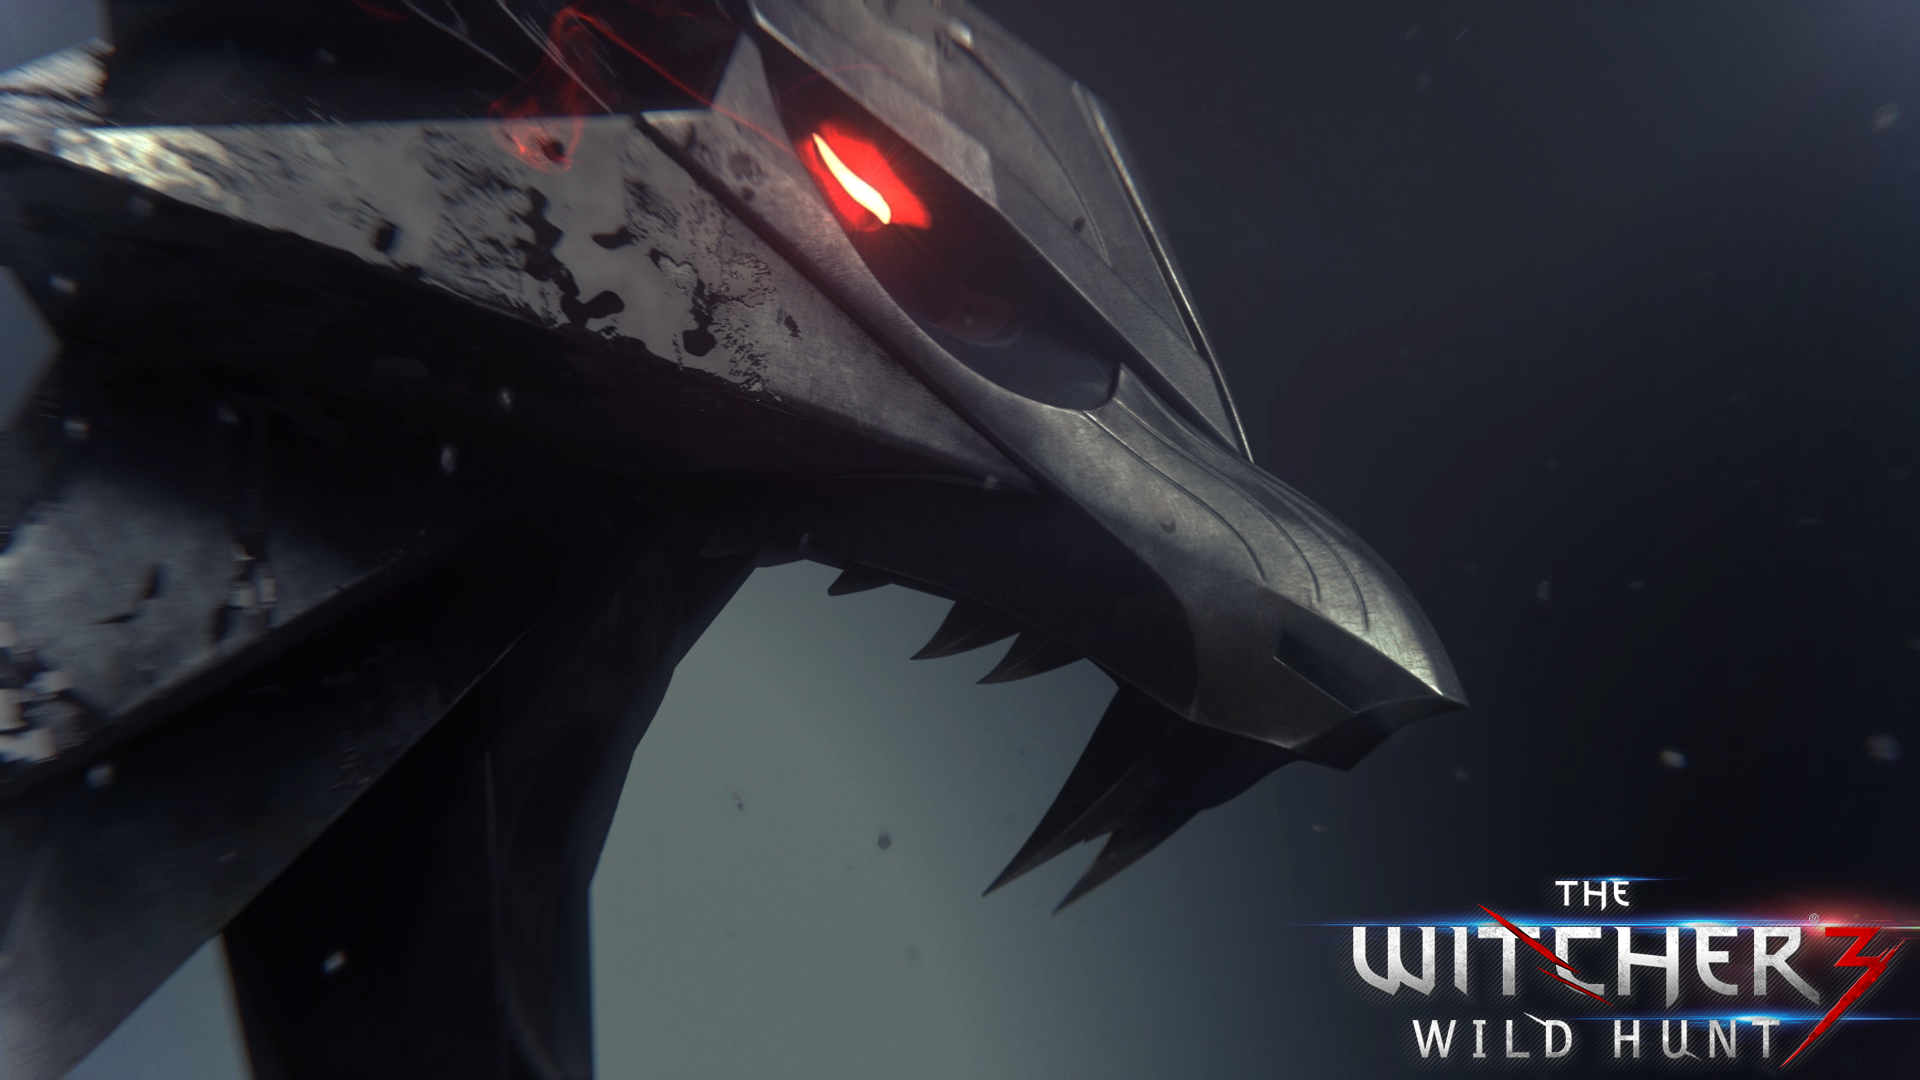 The Witcher 3 wallpaper 5 by Romix44